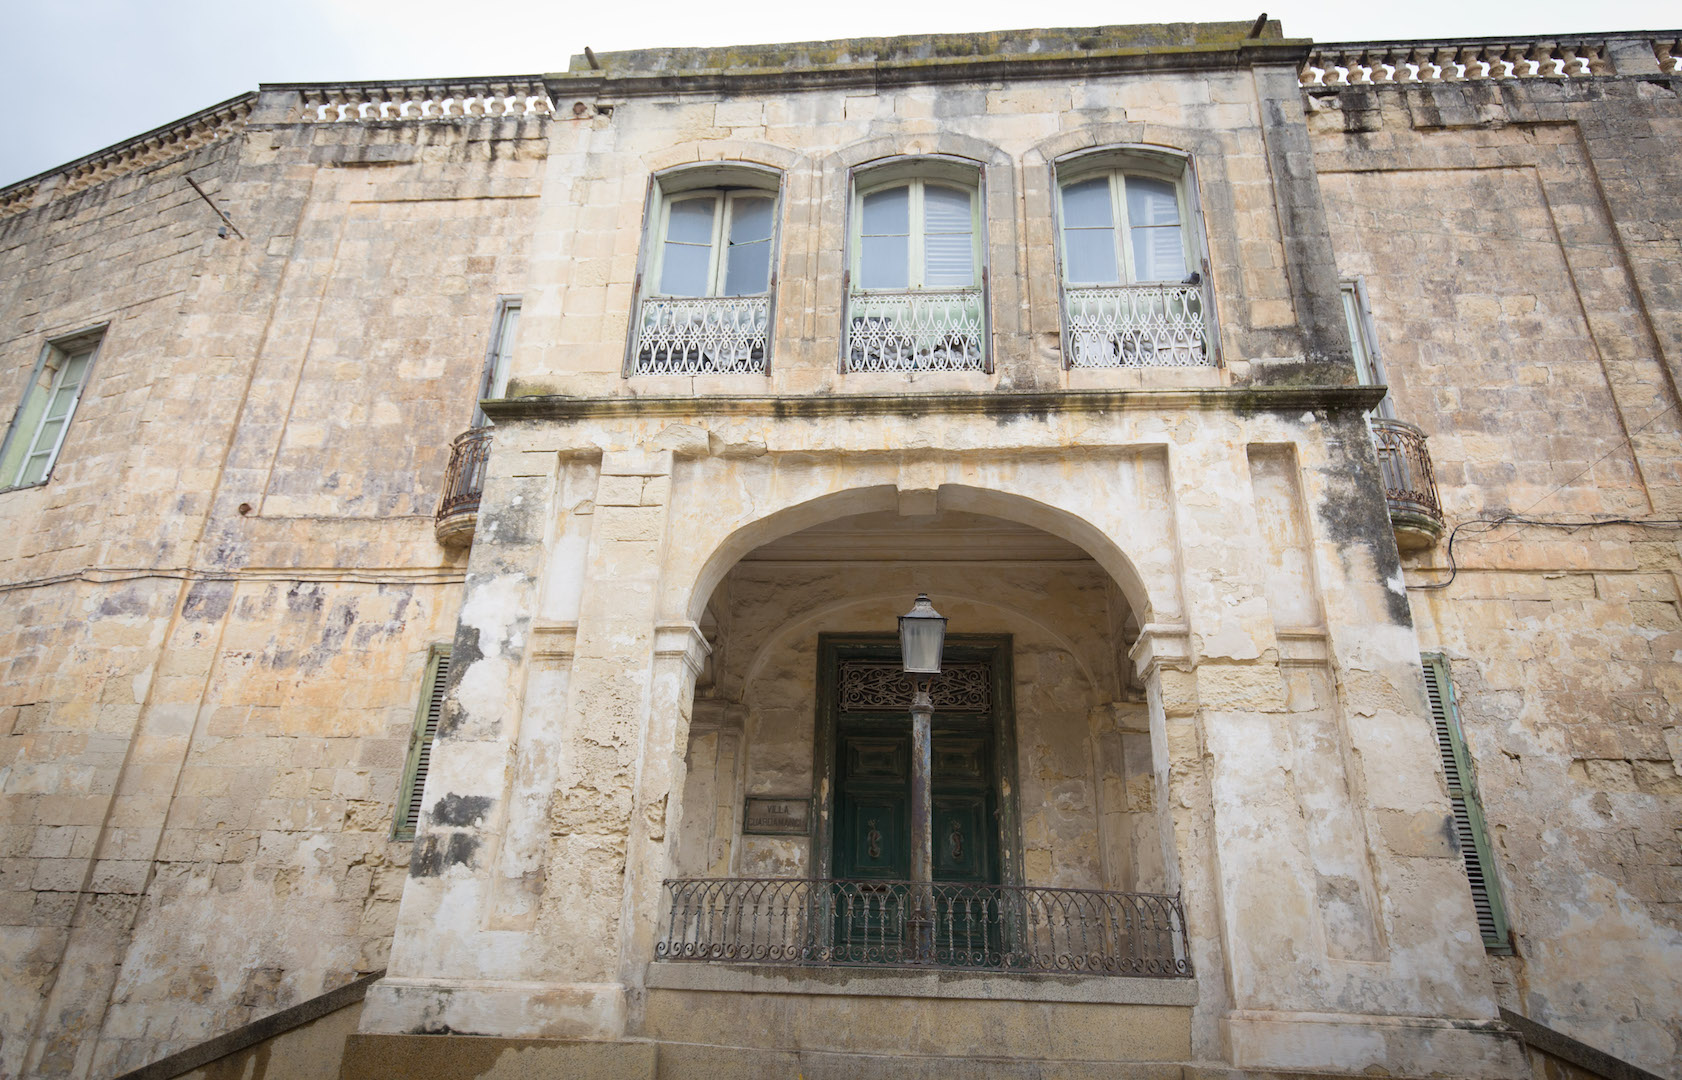 The Queen's former Malta home, Villa Gaurdamangia, has gone up for sale [Photo: Getty]